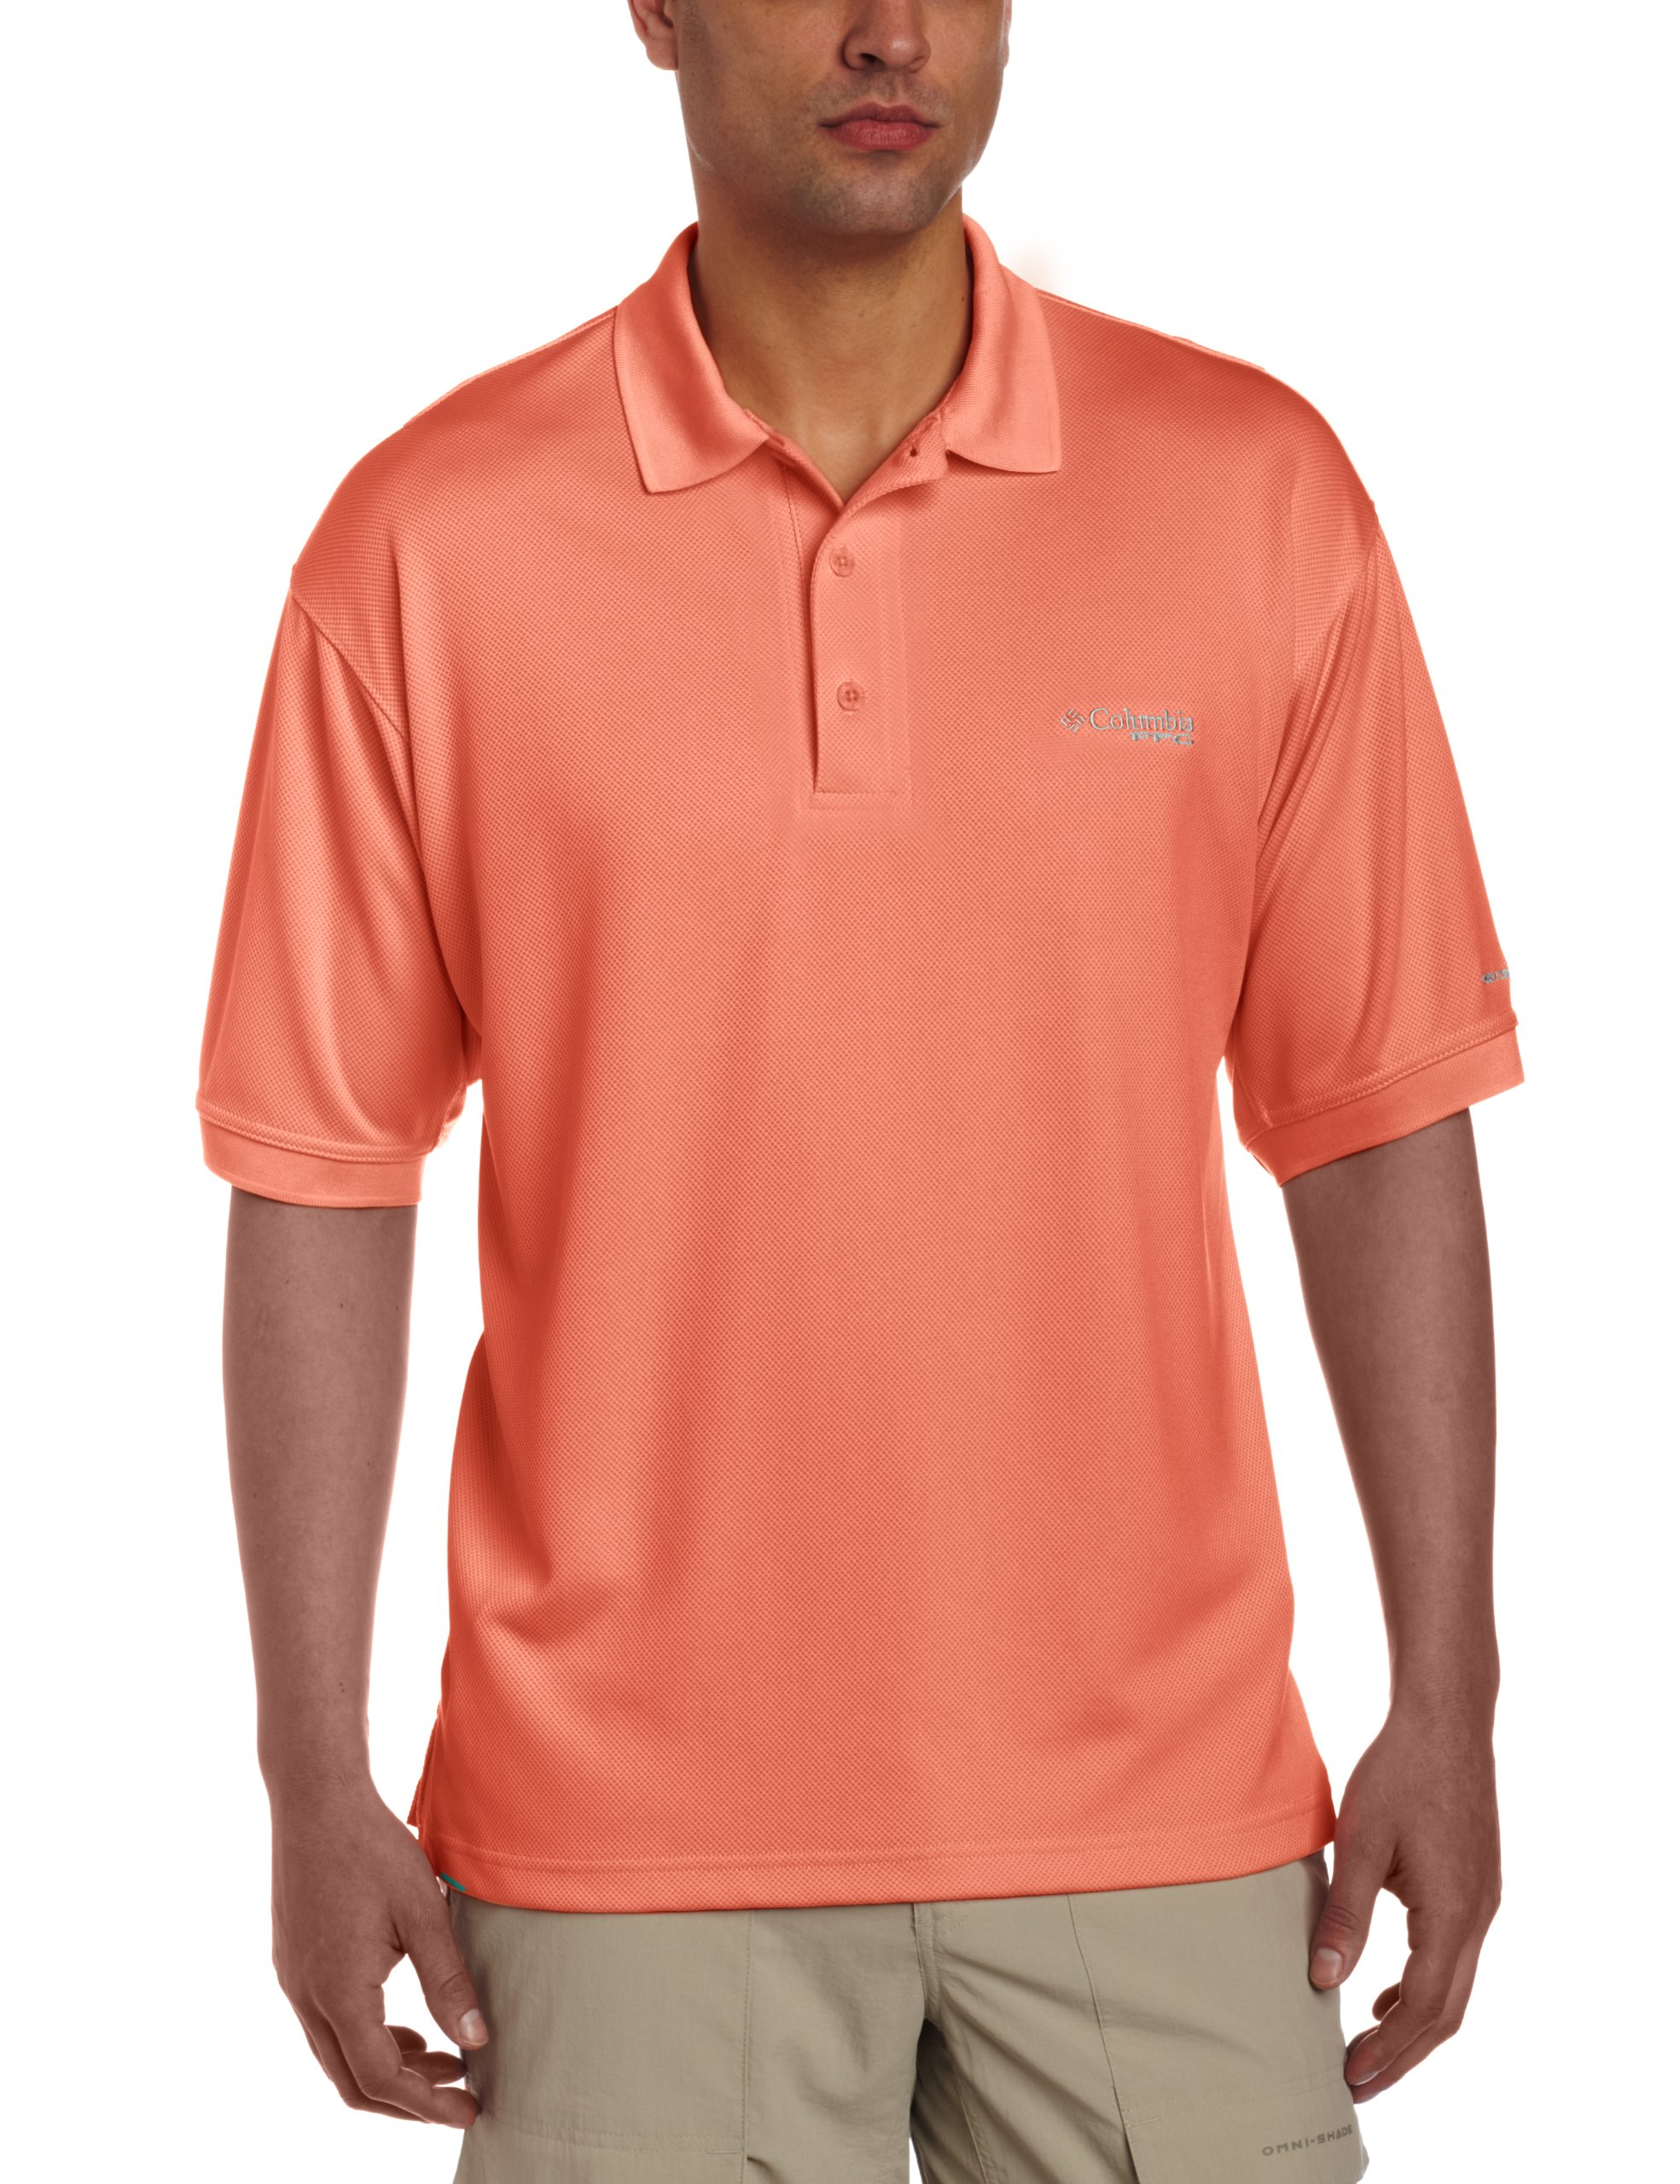 Columbia Men's PFG Perfect Cast Polo Shirt, Breathable, UV Protection